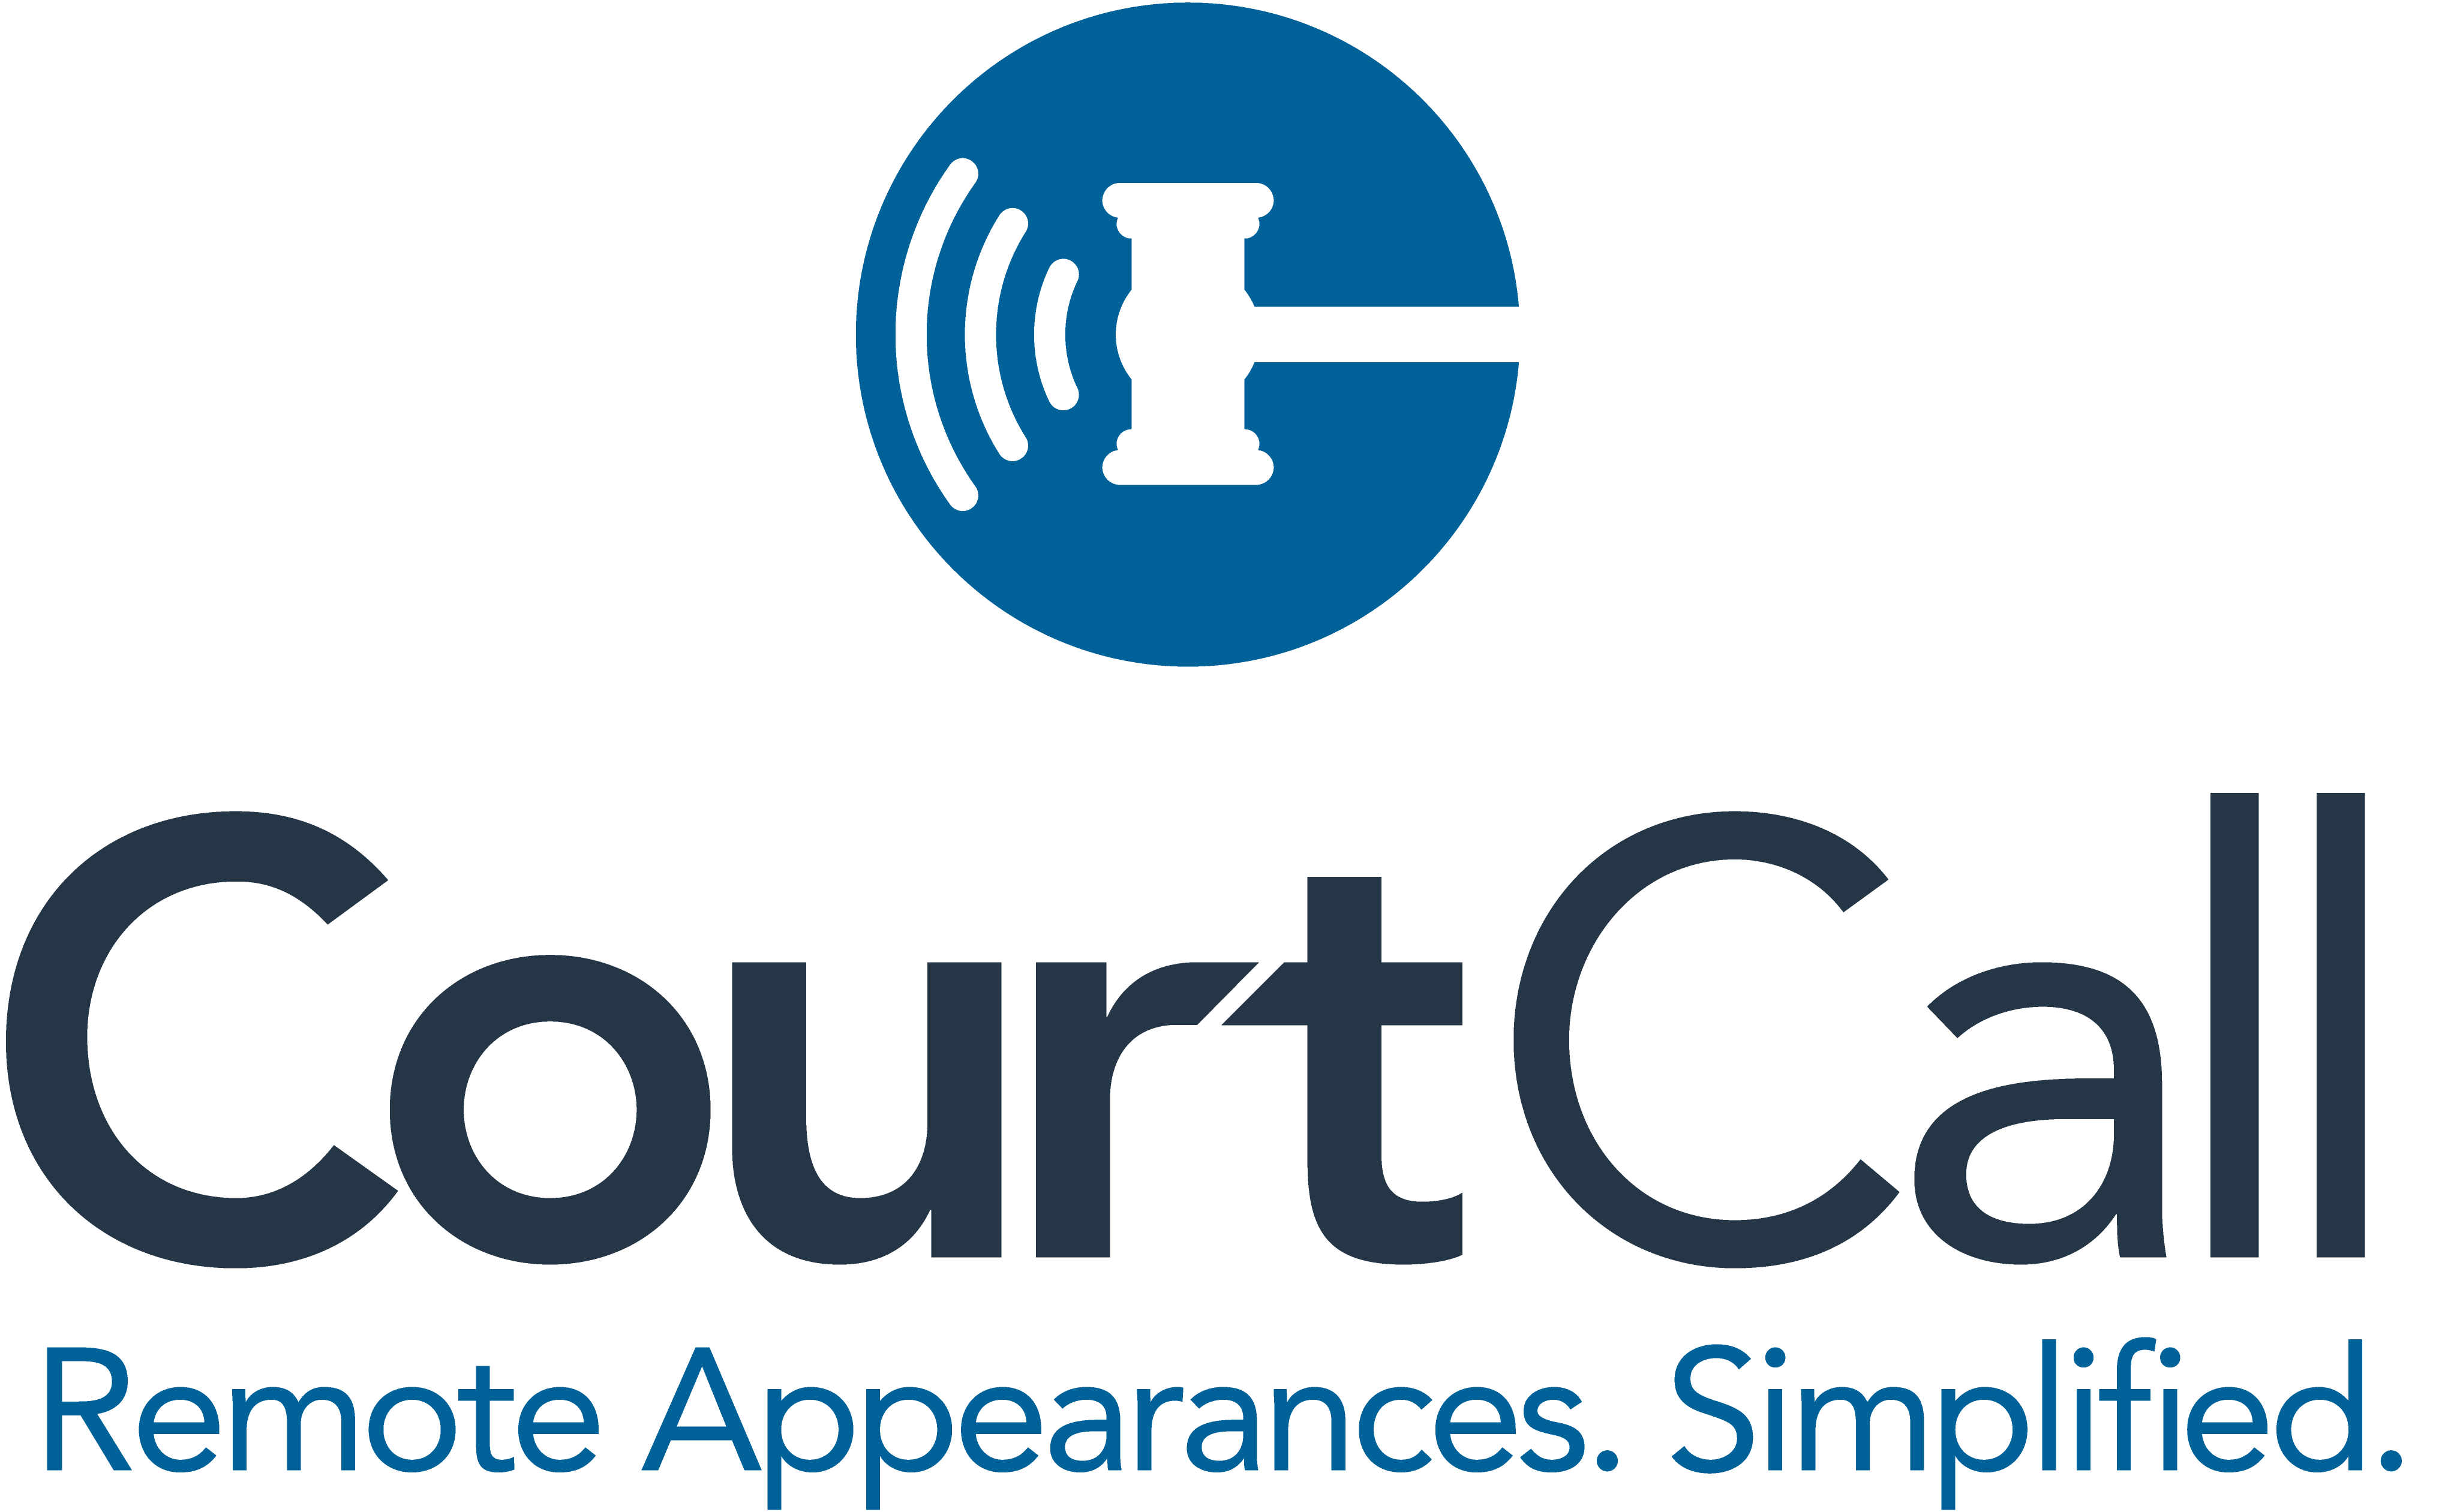 CourtCall Continues to Assist Courts and Justice Partners in Accessing CARES Act Resources